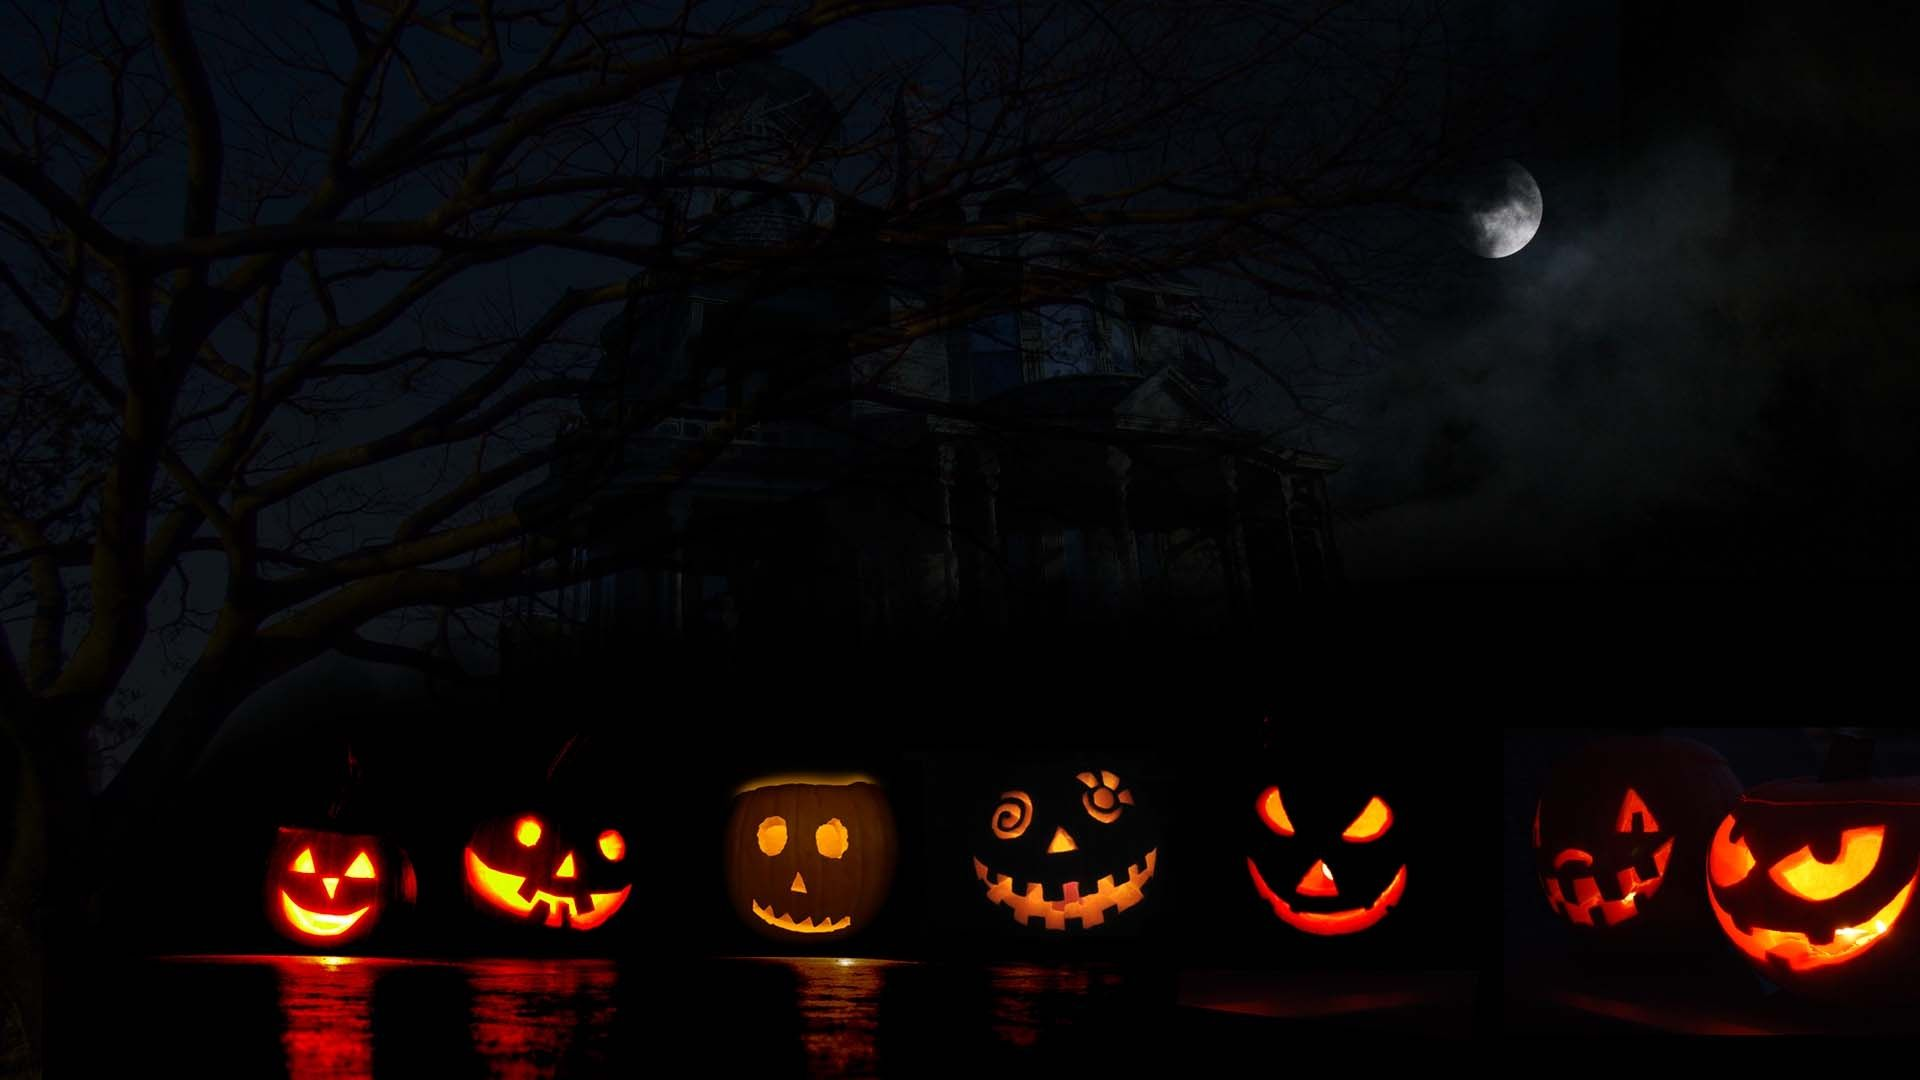 halloween wallpaper images | cute wallpapers | pinterest | wallpaper